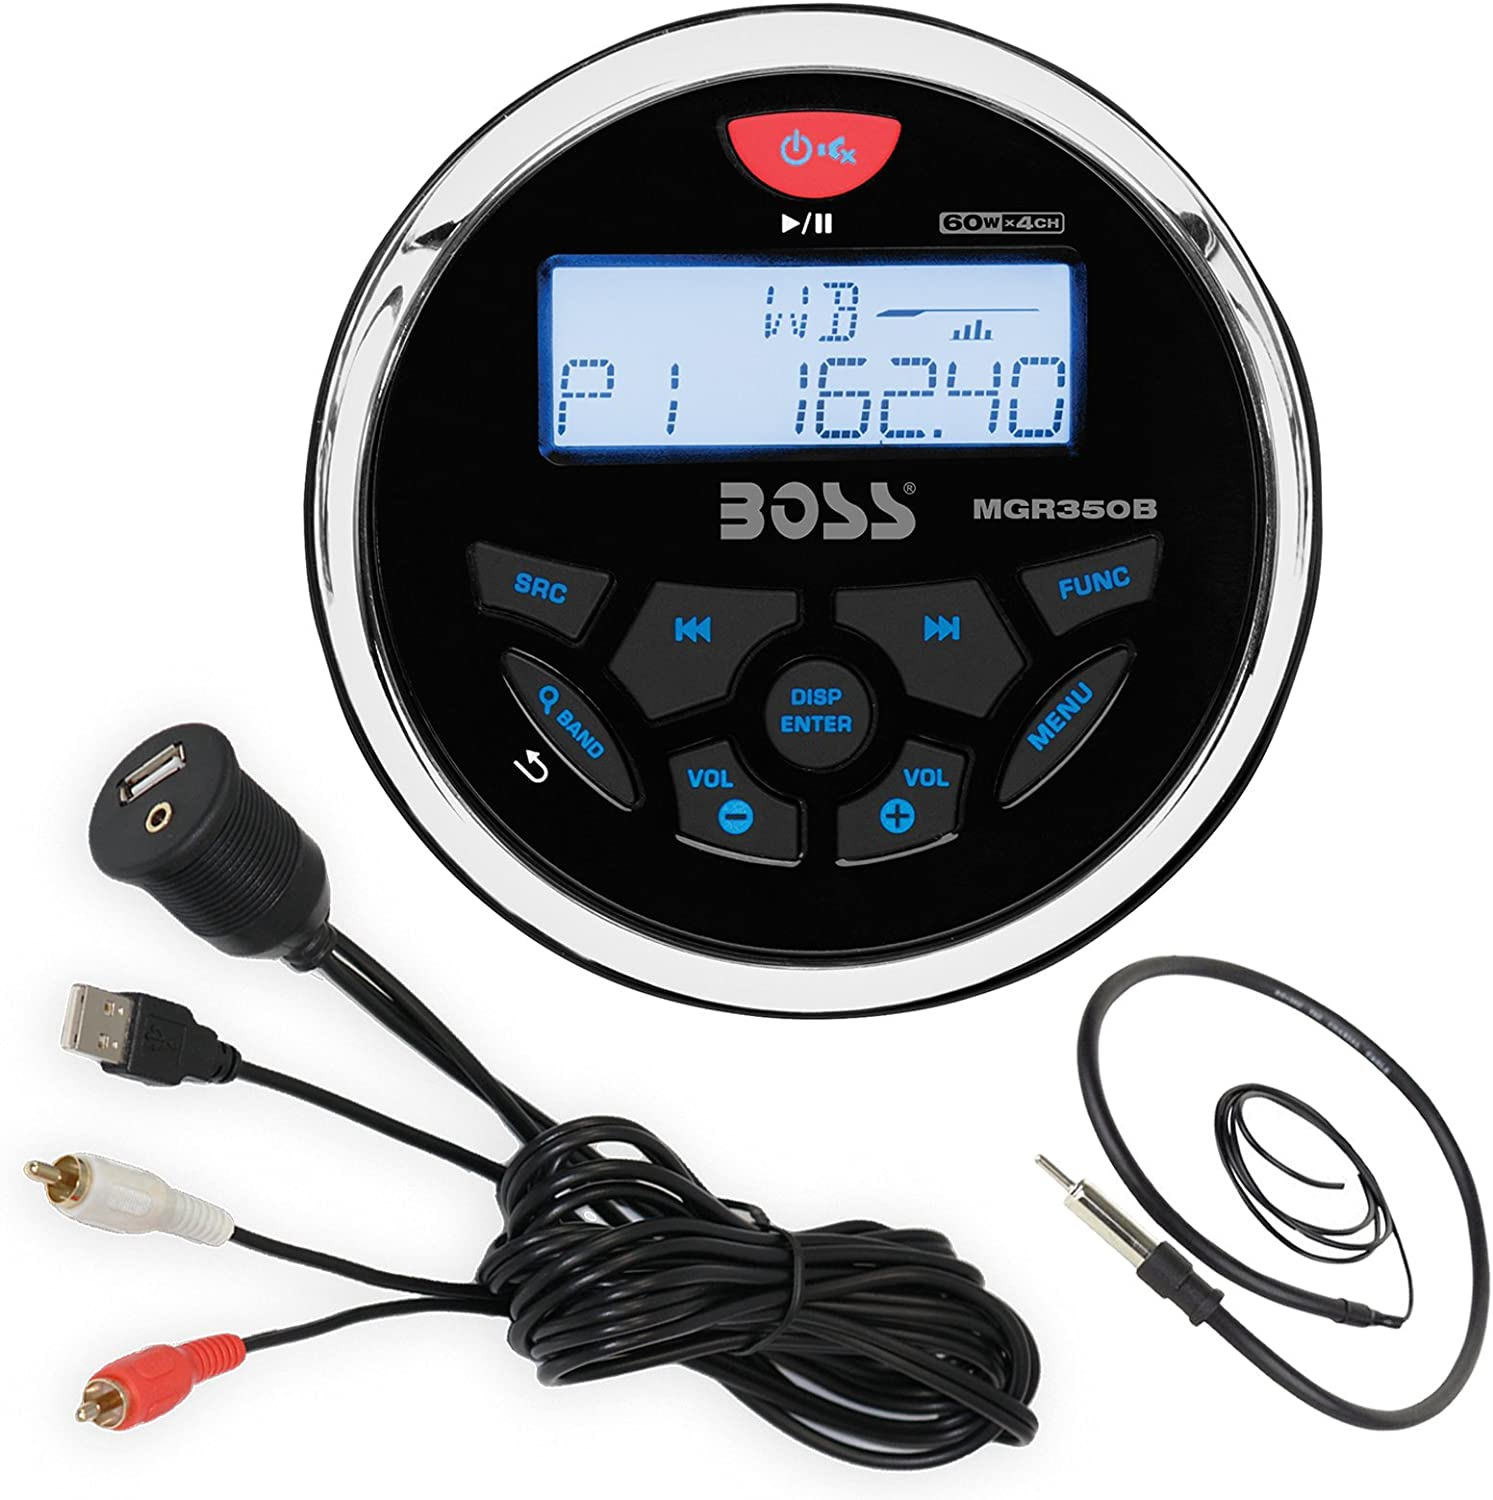 Enrock 22 Wired Radio Antenna Boss Audio MGR350B Bluetooth in Dash Marine Gauge Style Digital Media AM//FM Receiver Bundle Combo with Enrock USB 3.5MM AUX to RCA Interface Mount Cable